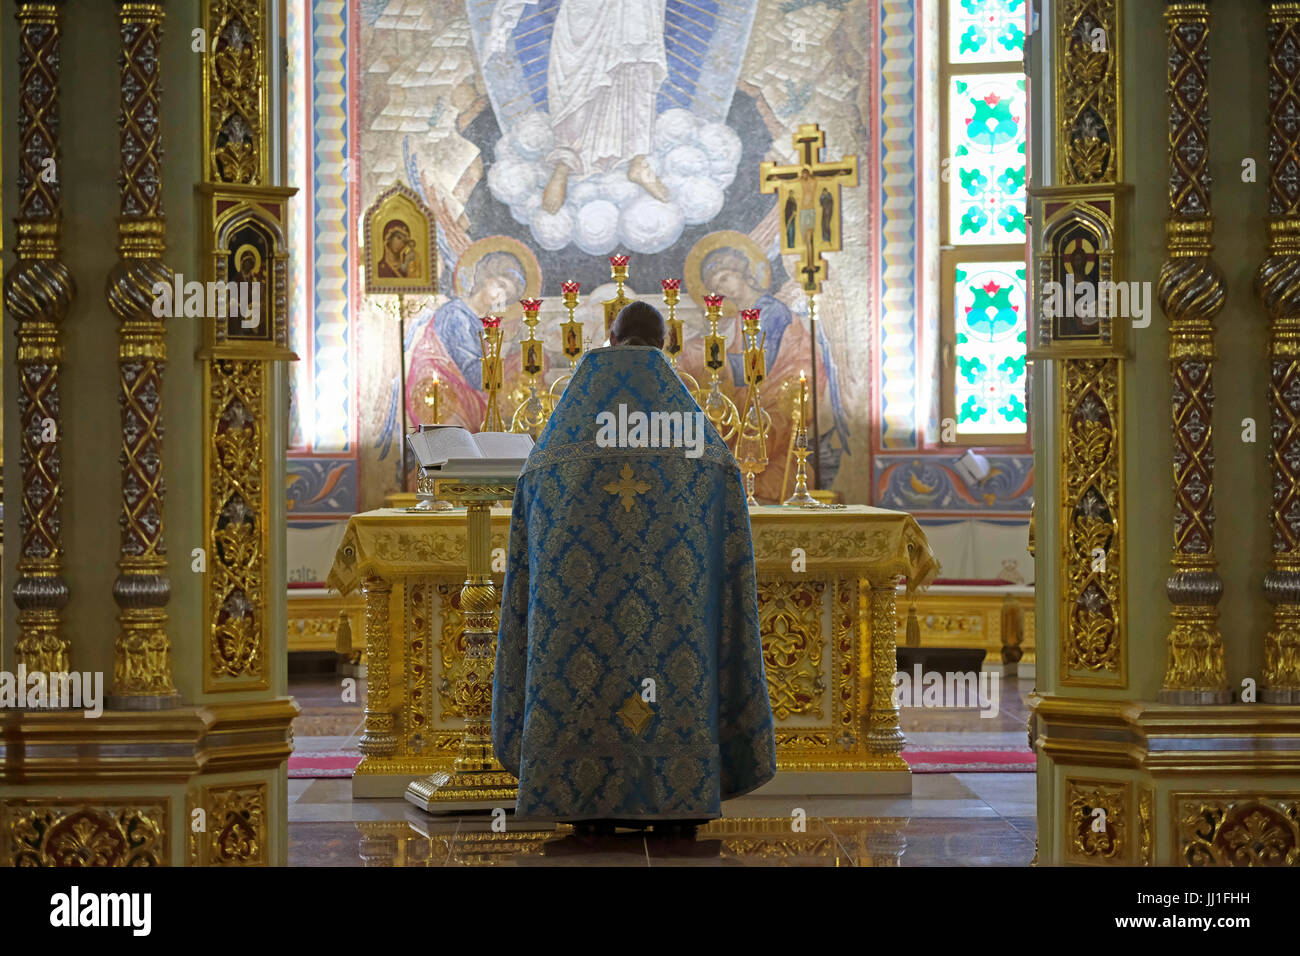 A Russian Orthodox priest praying at the altar of Cathedral of the Nativity in the city of Yuzhno-Sakhalinsk, on - Stock Image